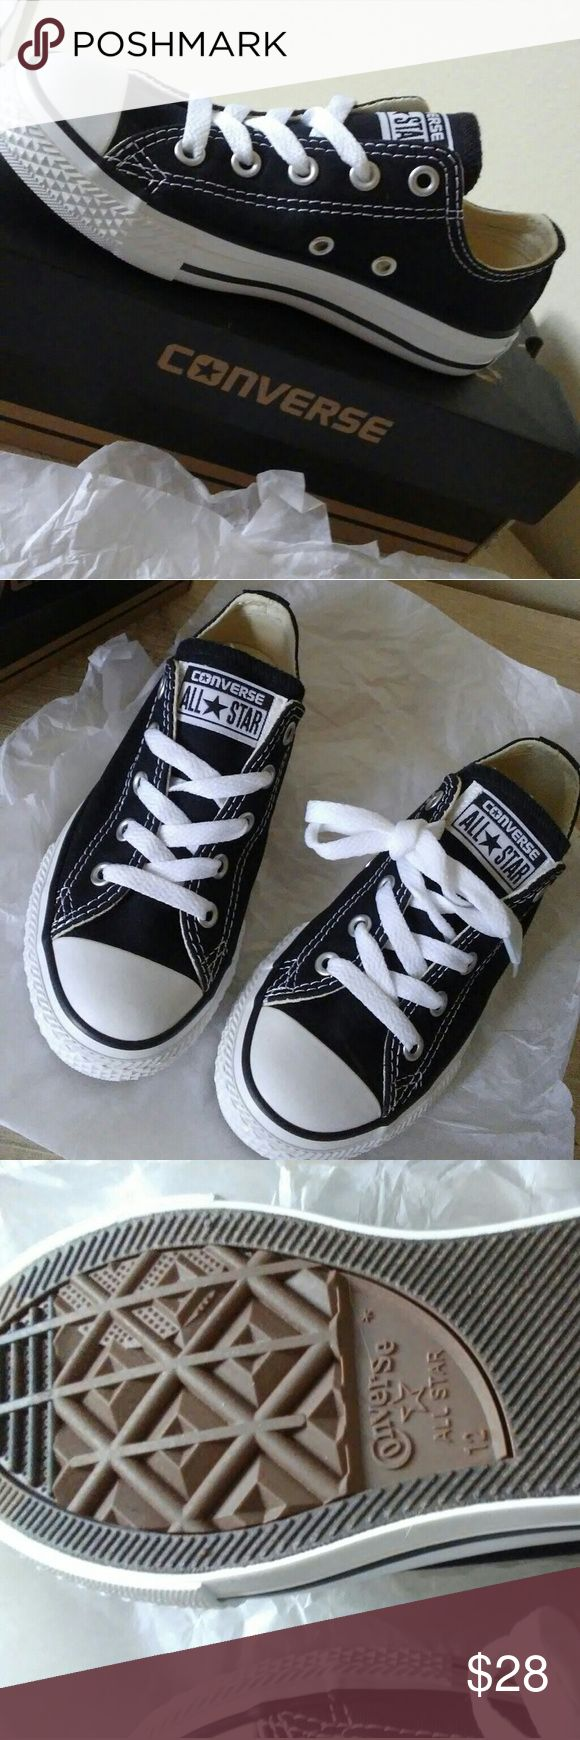 ✴New✴ kids Converse (Sz12) New size 12 for kids. Colors black and white new never used. New in box. Converse Shoes Sneakers